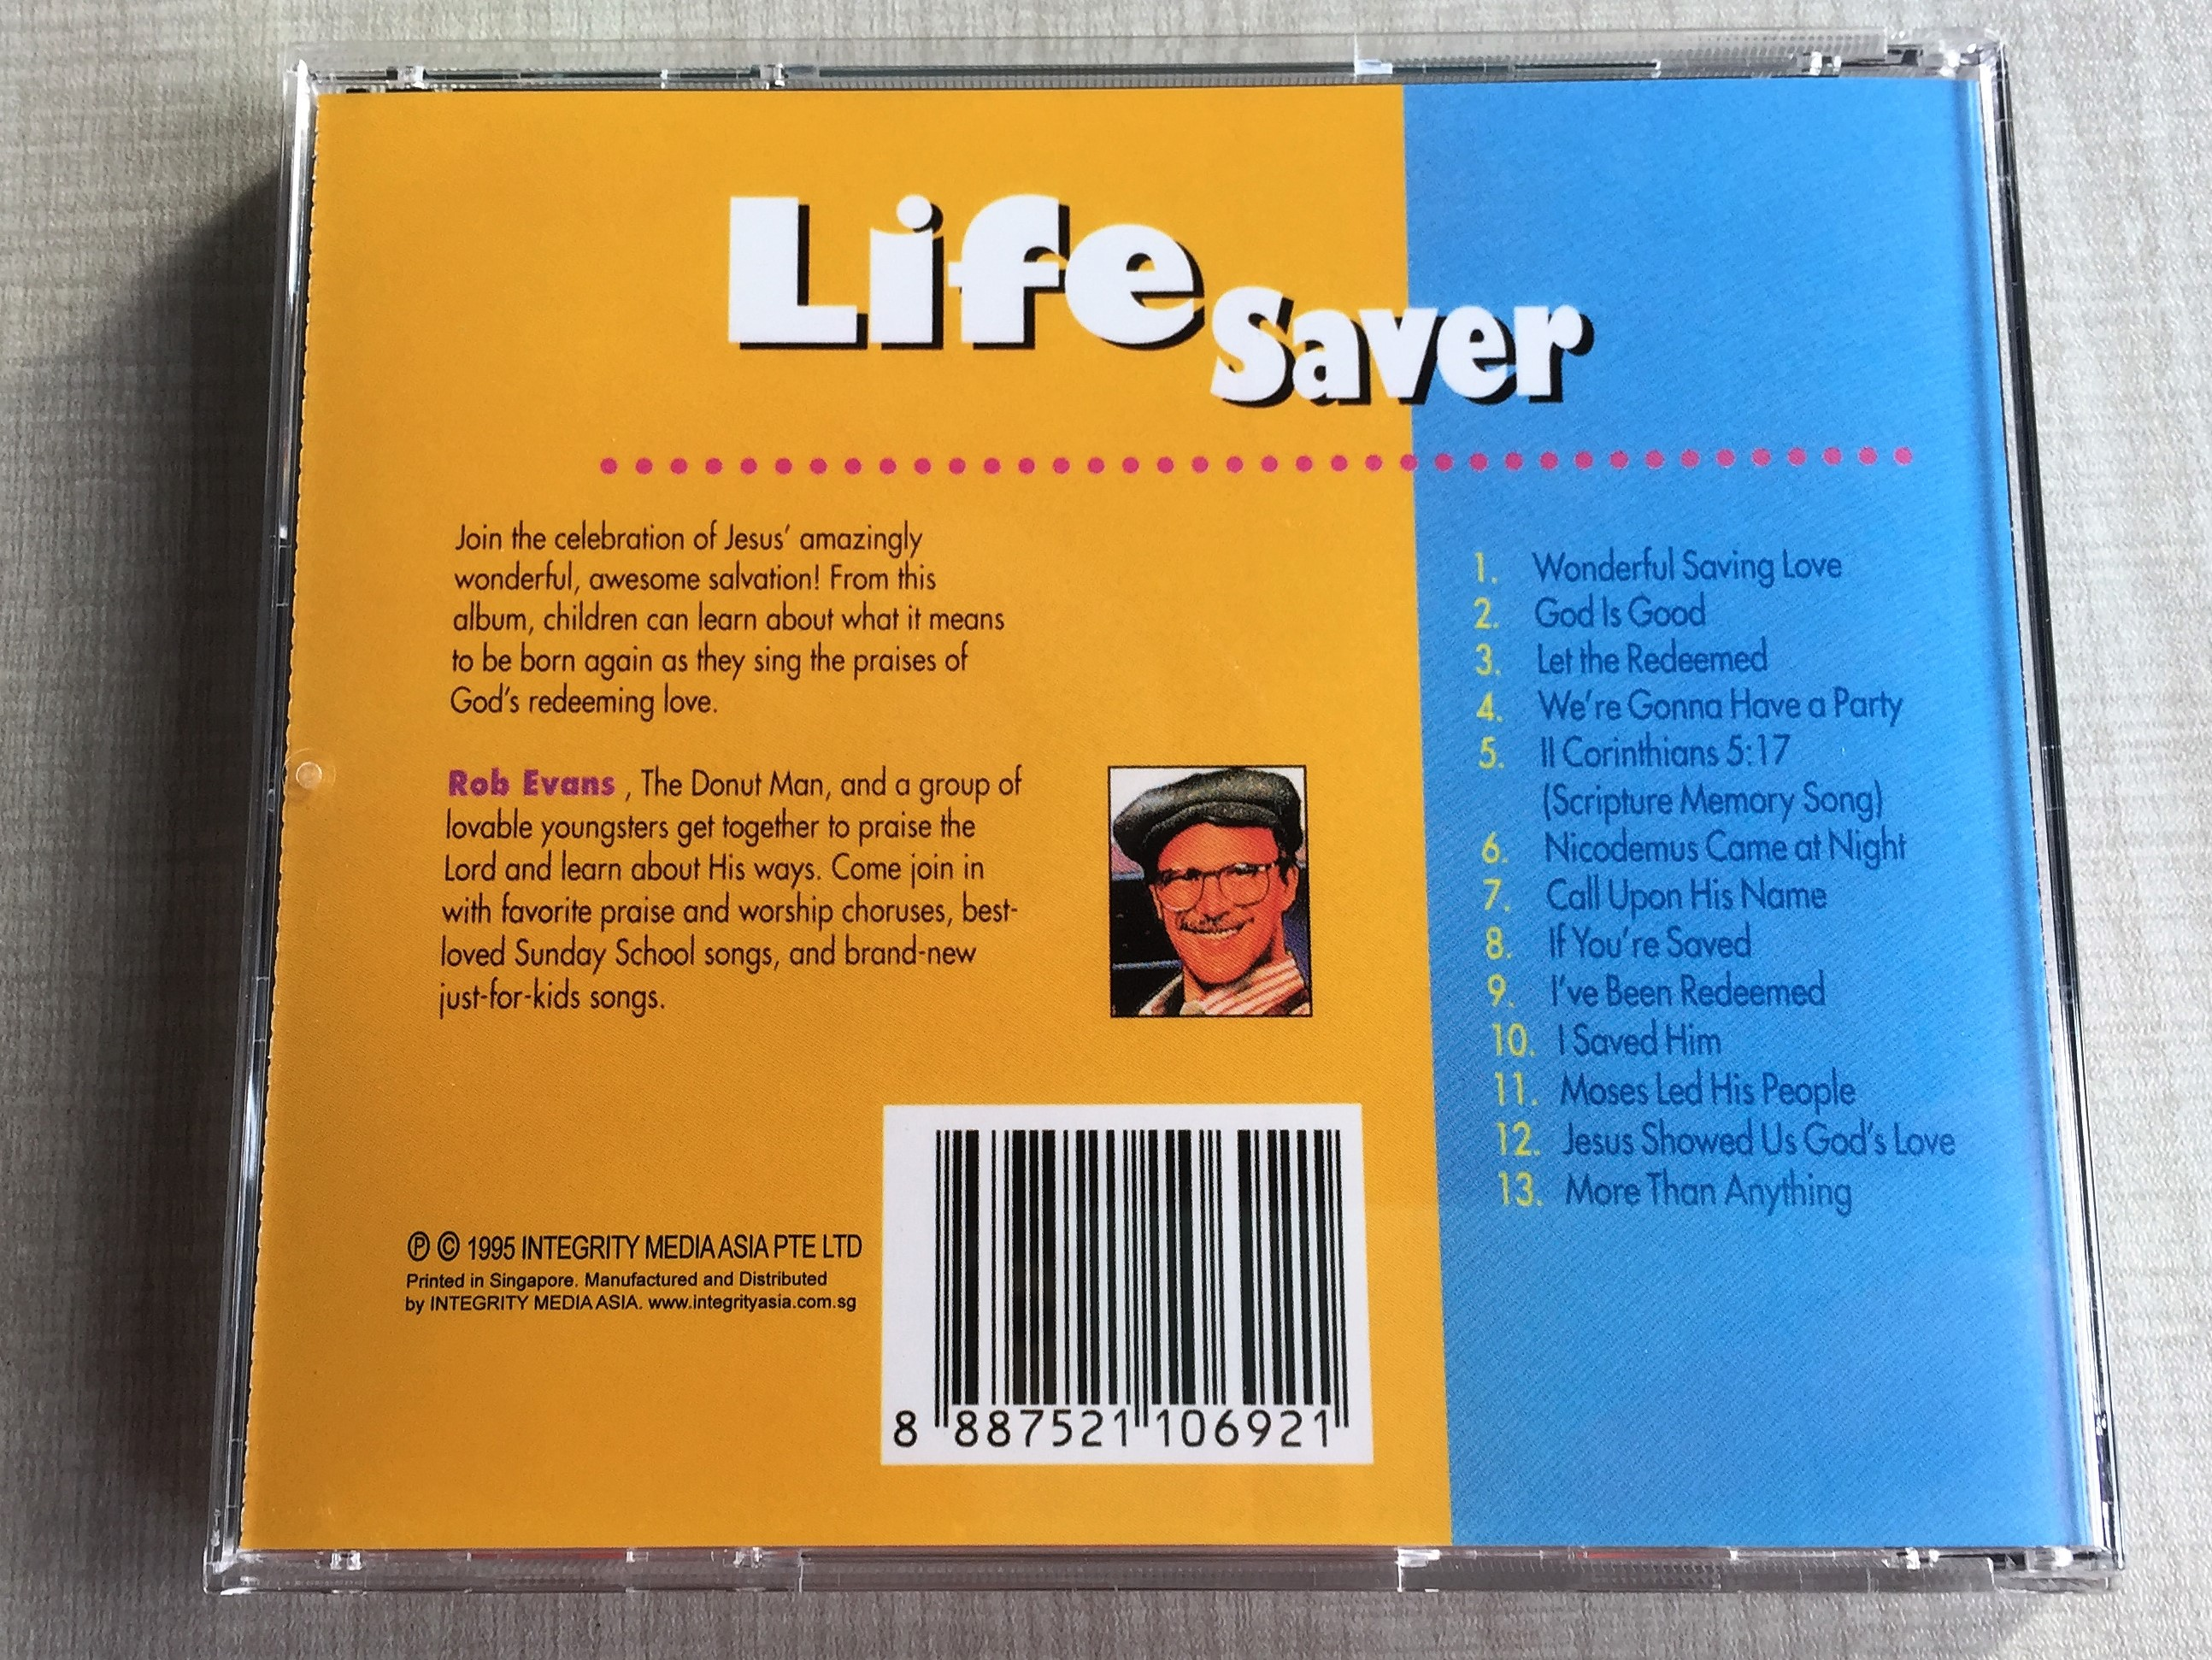 Life Saver / Integrity Music Just For Kids / Audio CD 1995 / Rob Evans, The  Donut Man / Songs that Teach, Songs that Praise     with The Donut Man